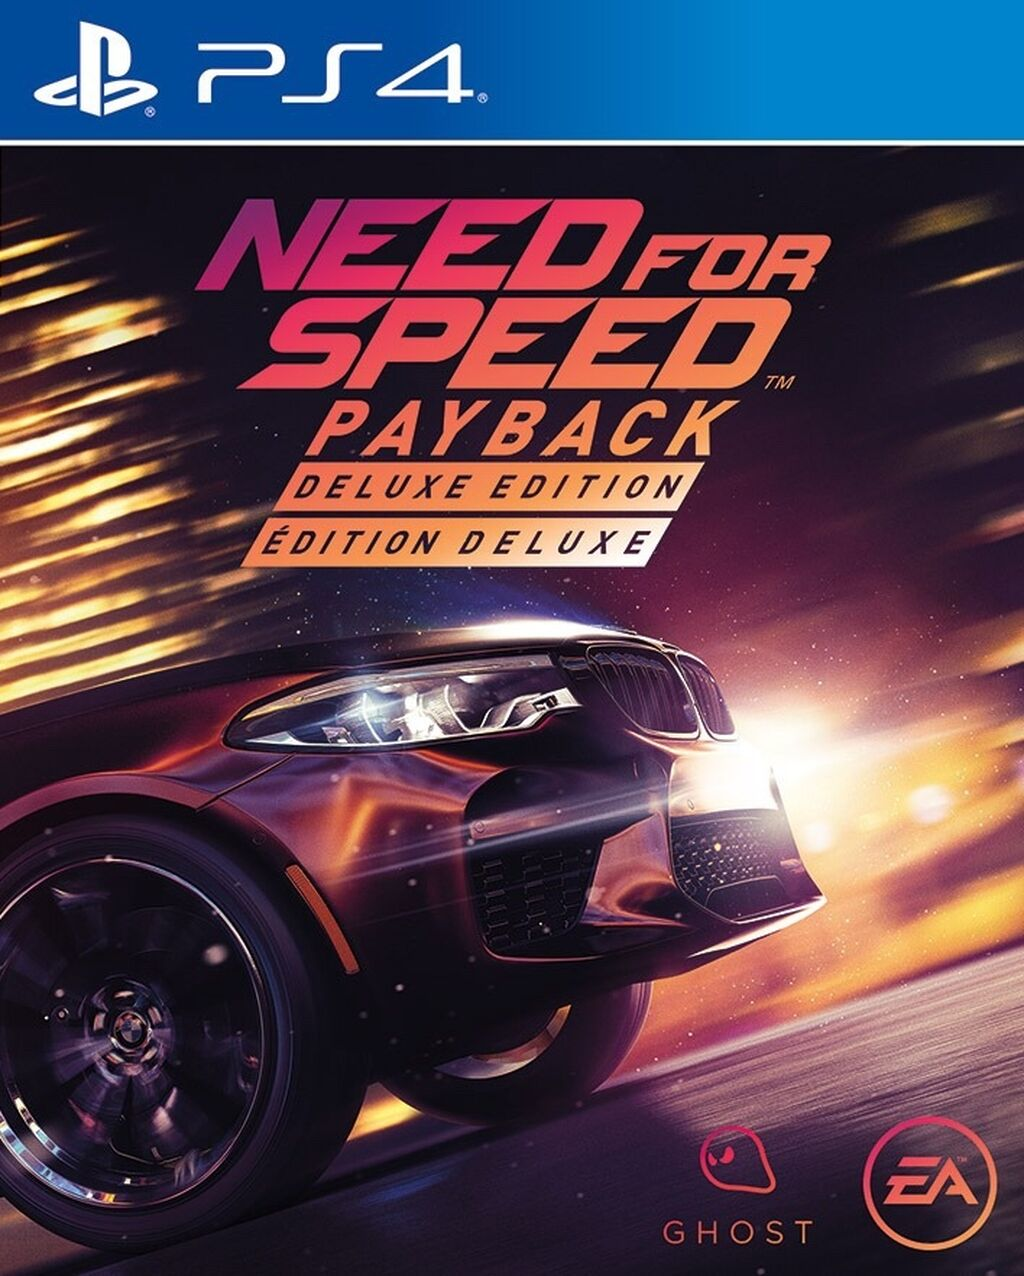 Need for Speed Payback Deluxe Edition [PS4] 5.05 / 6.72 / 7.02 [EUR] (2017) [Русский] (v1.10)